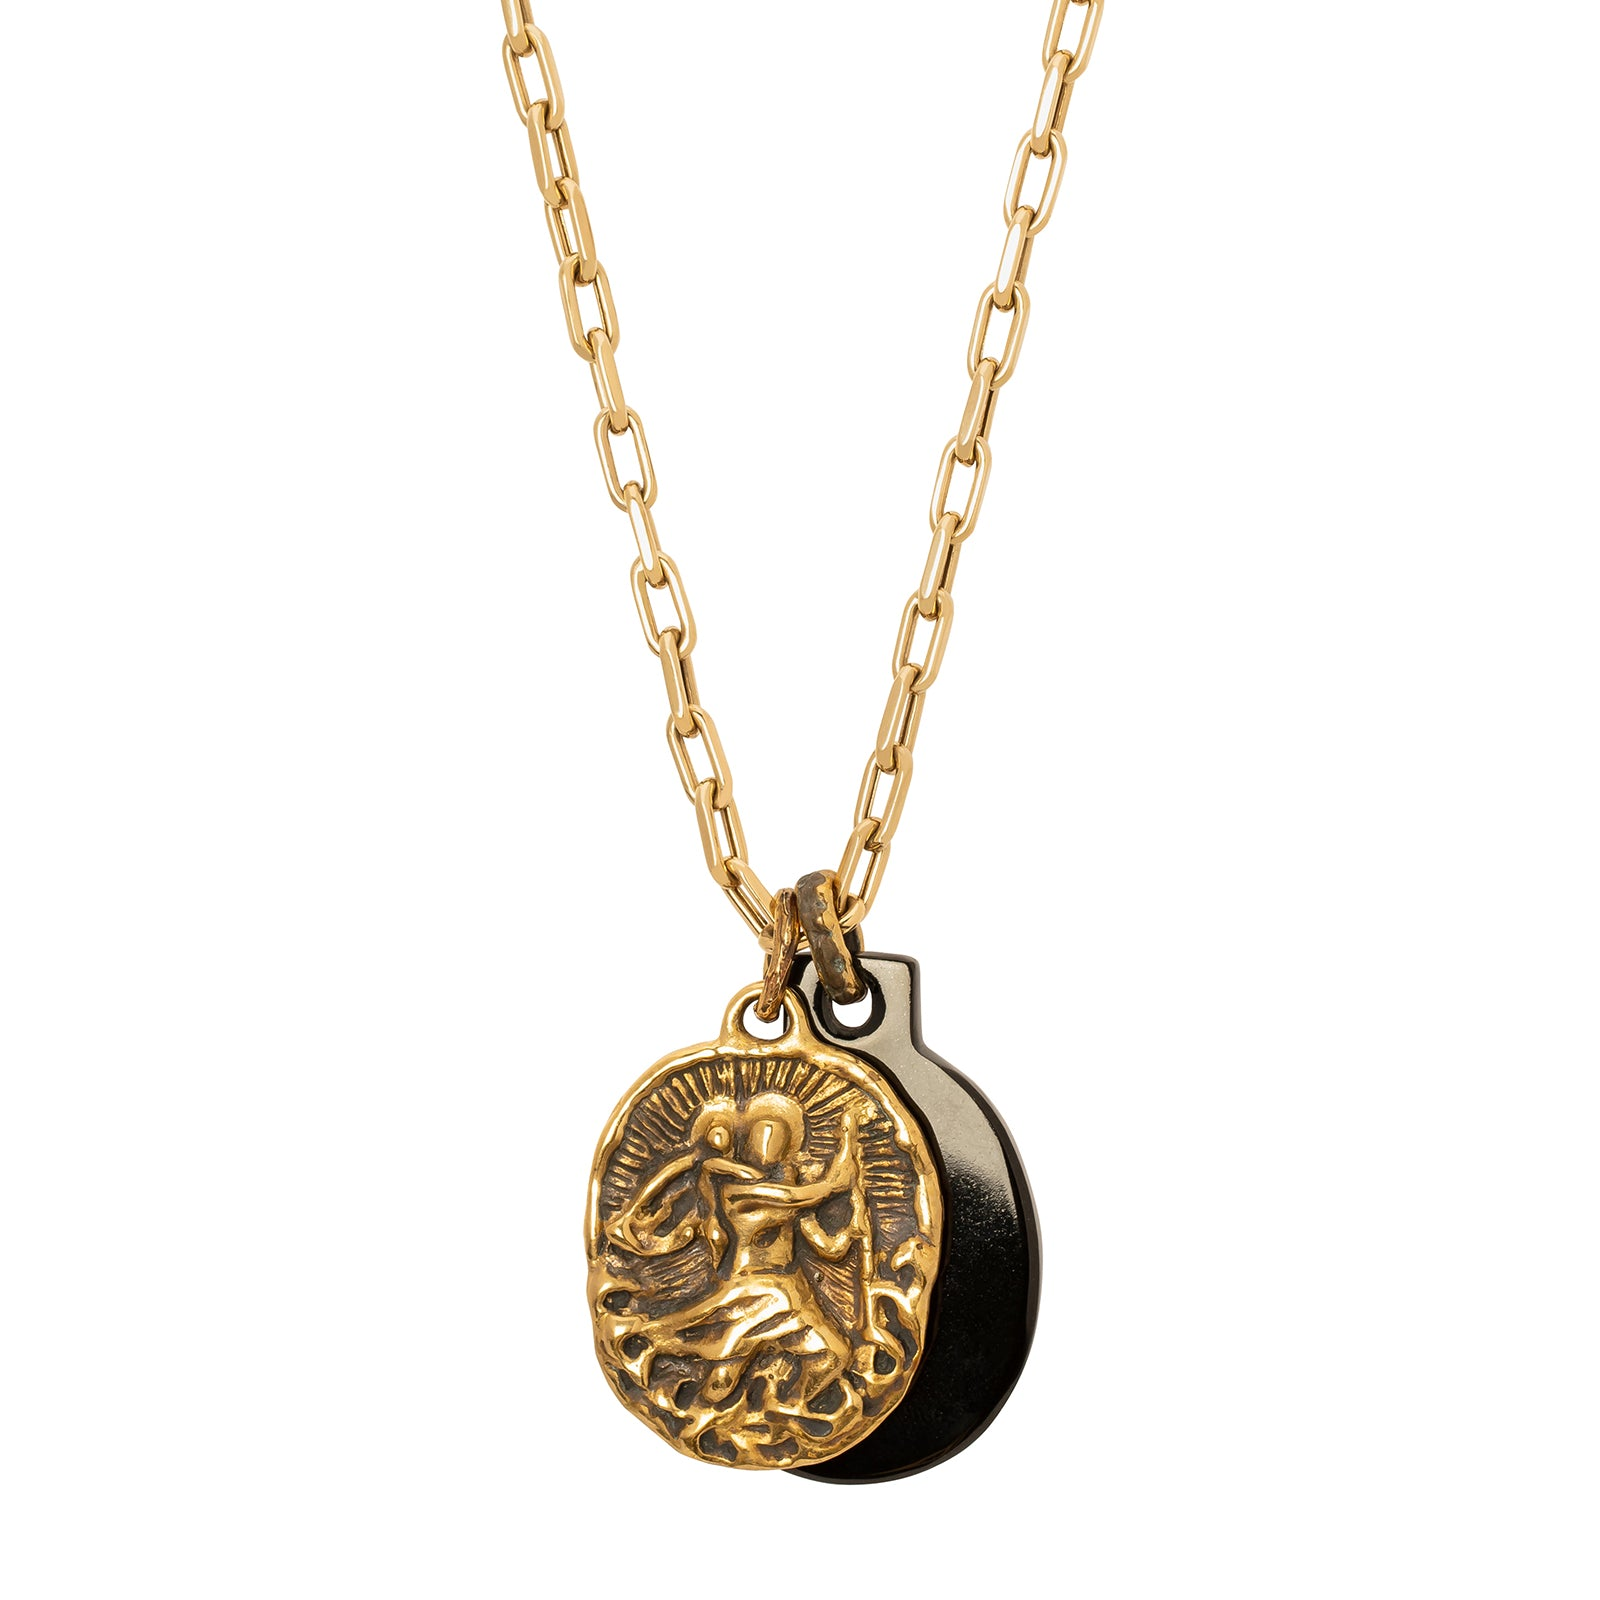 Lisa Eisner Jewelry Saint Christopher Black Jade Medal Necklace - Necklaces - Broken English Jewelry